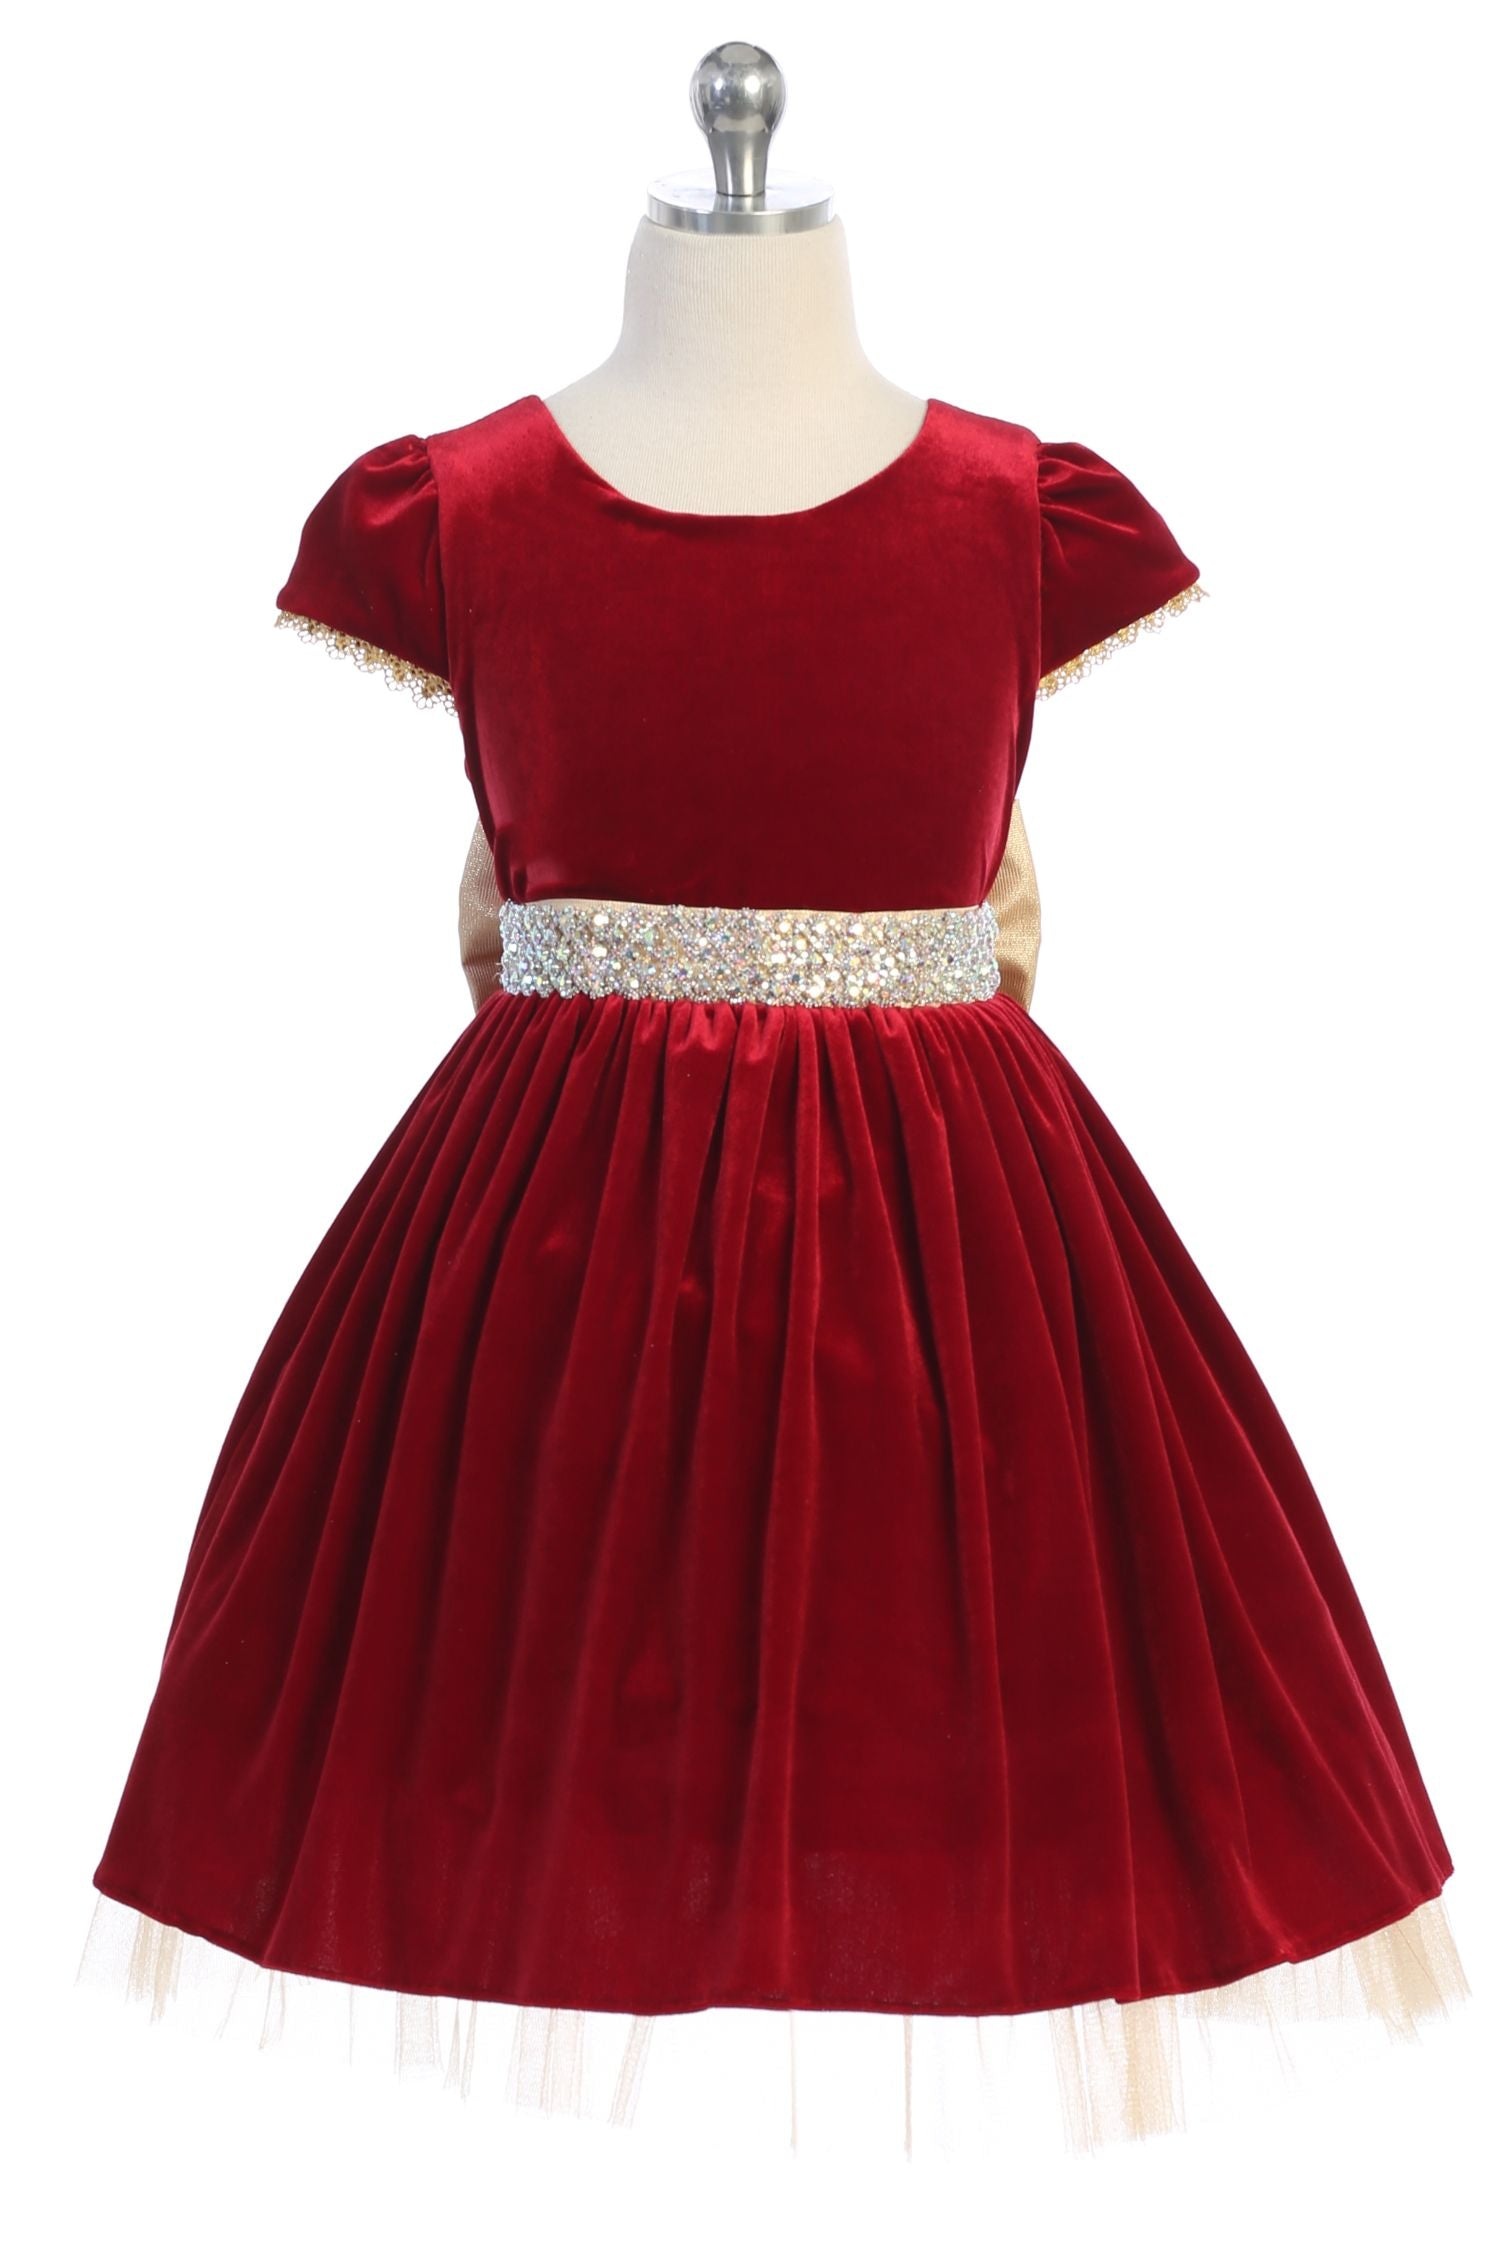 Velvet Crystal Rhinestone Dress